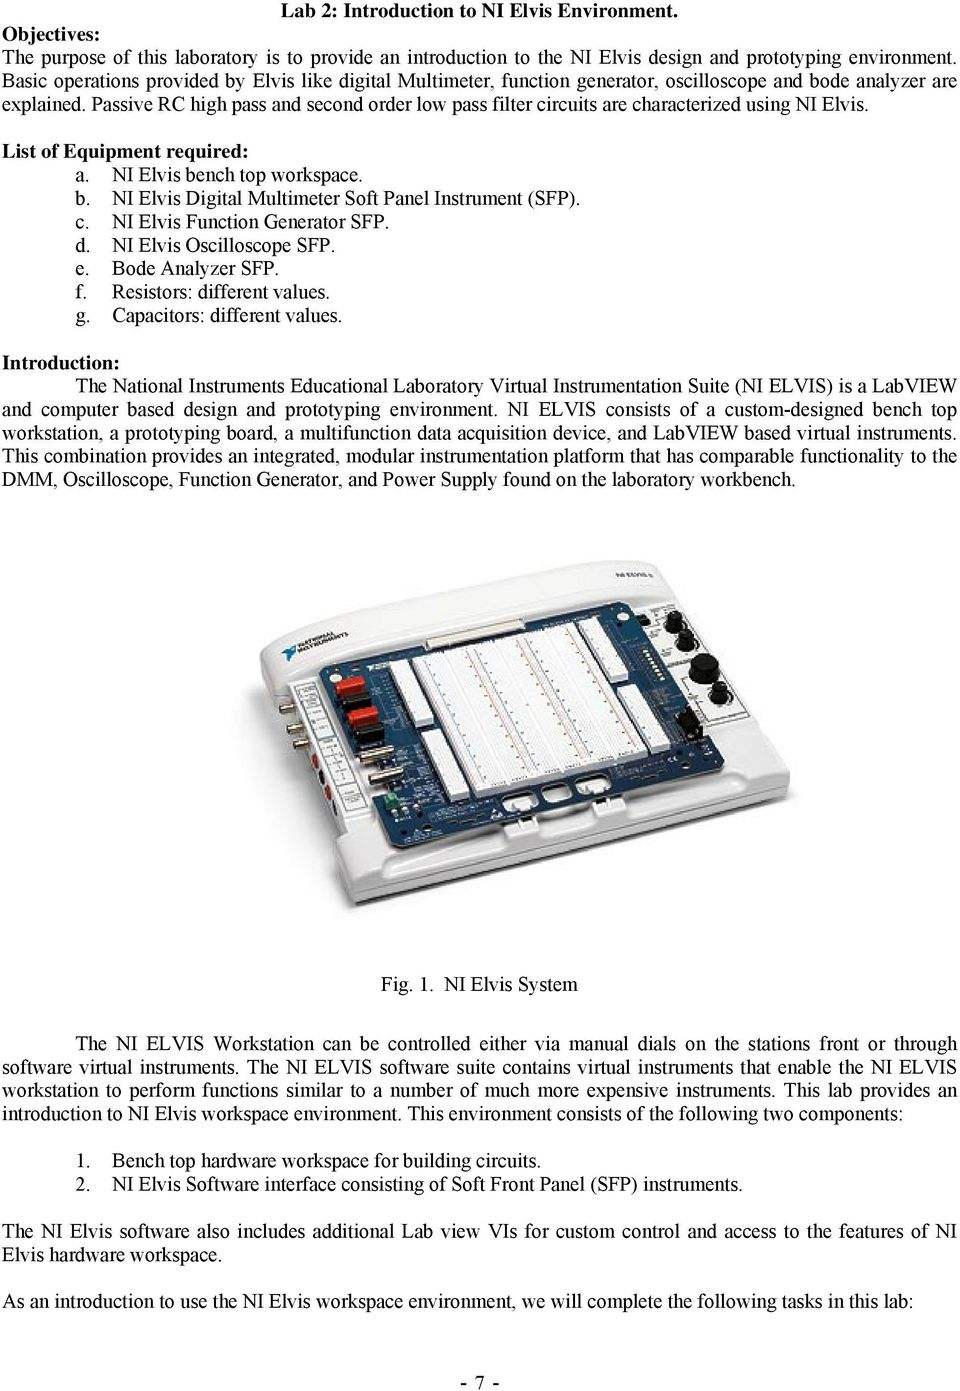 Electronic Circuit I Lab Manual Laboratory Elen 325 Electronics Pdf Passive Rc High Pass And Second Order Low Filter Circuits Are Characterized Using Ni Elvis